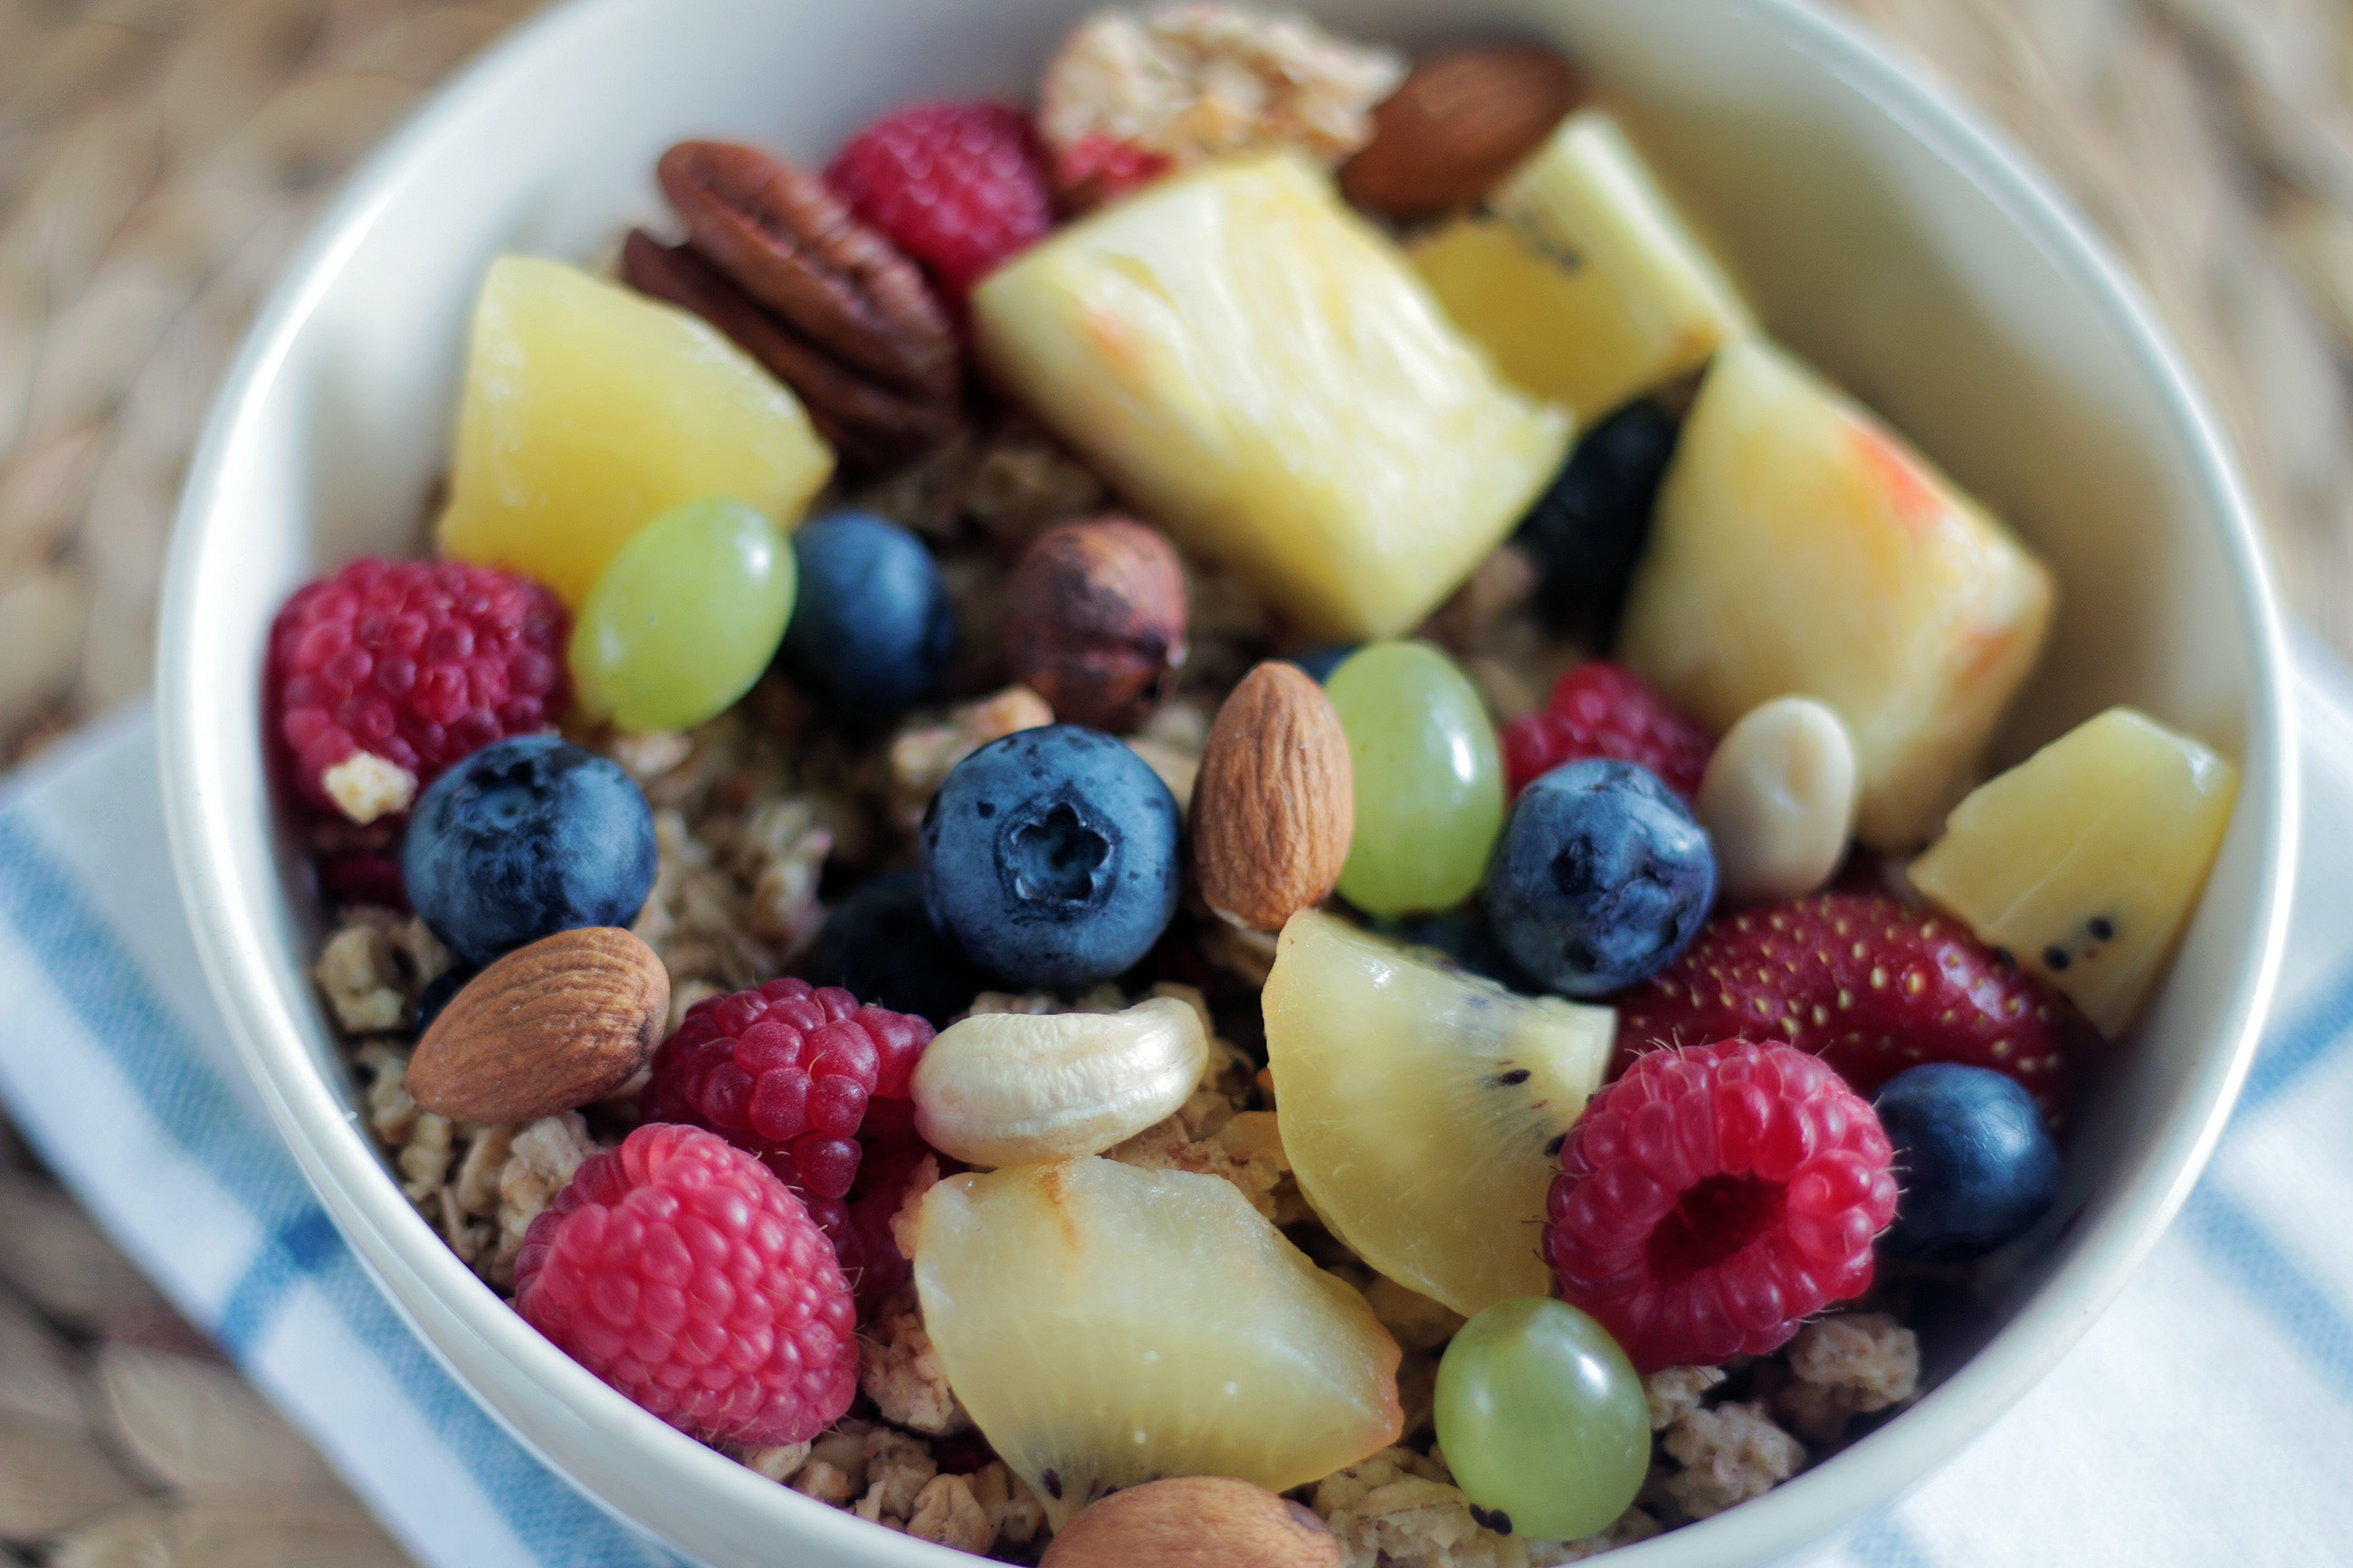 granola, almonds, and fresh fruit in a white bowl